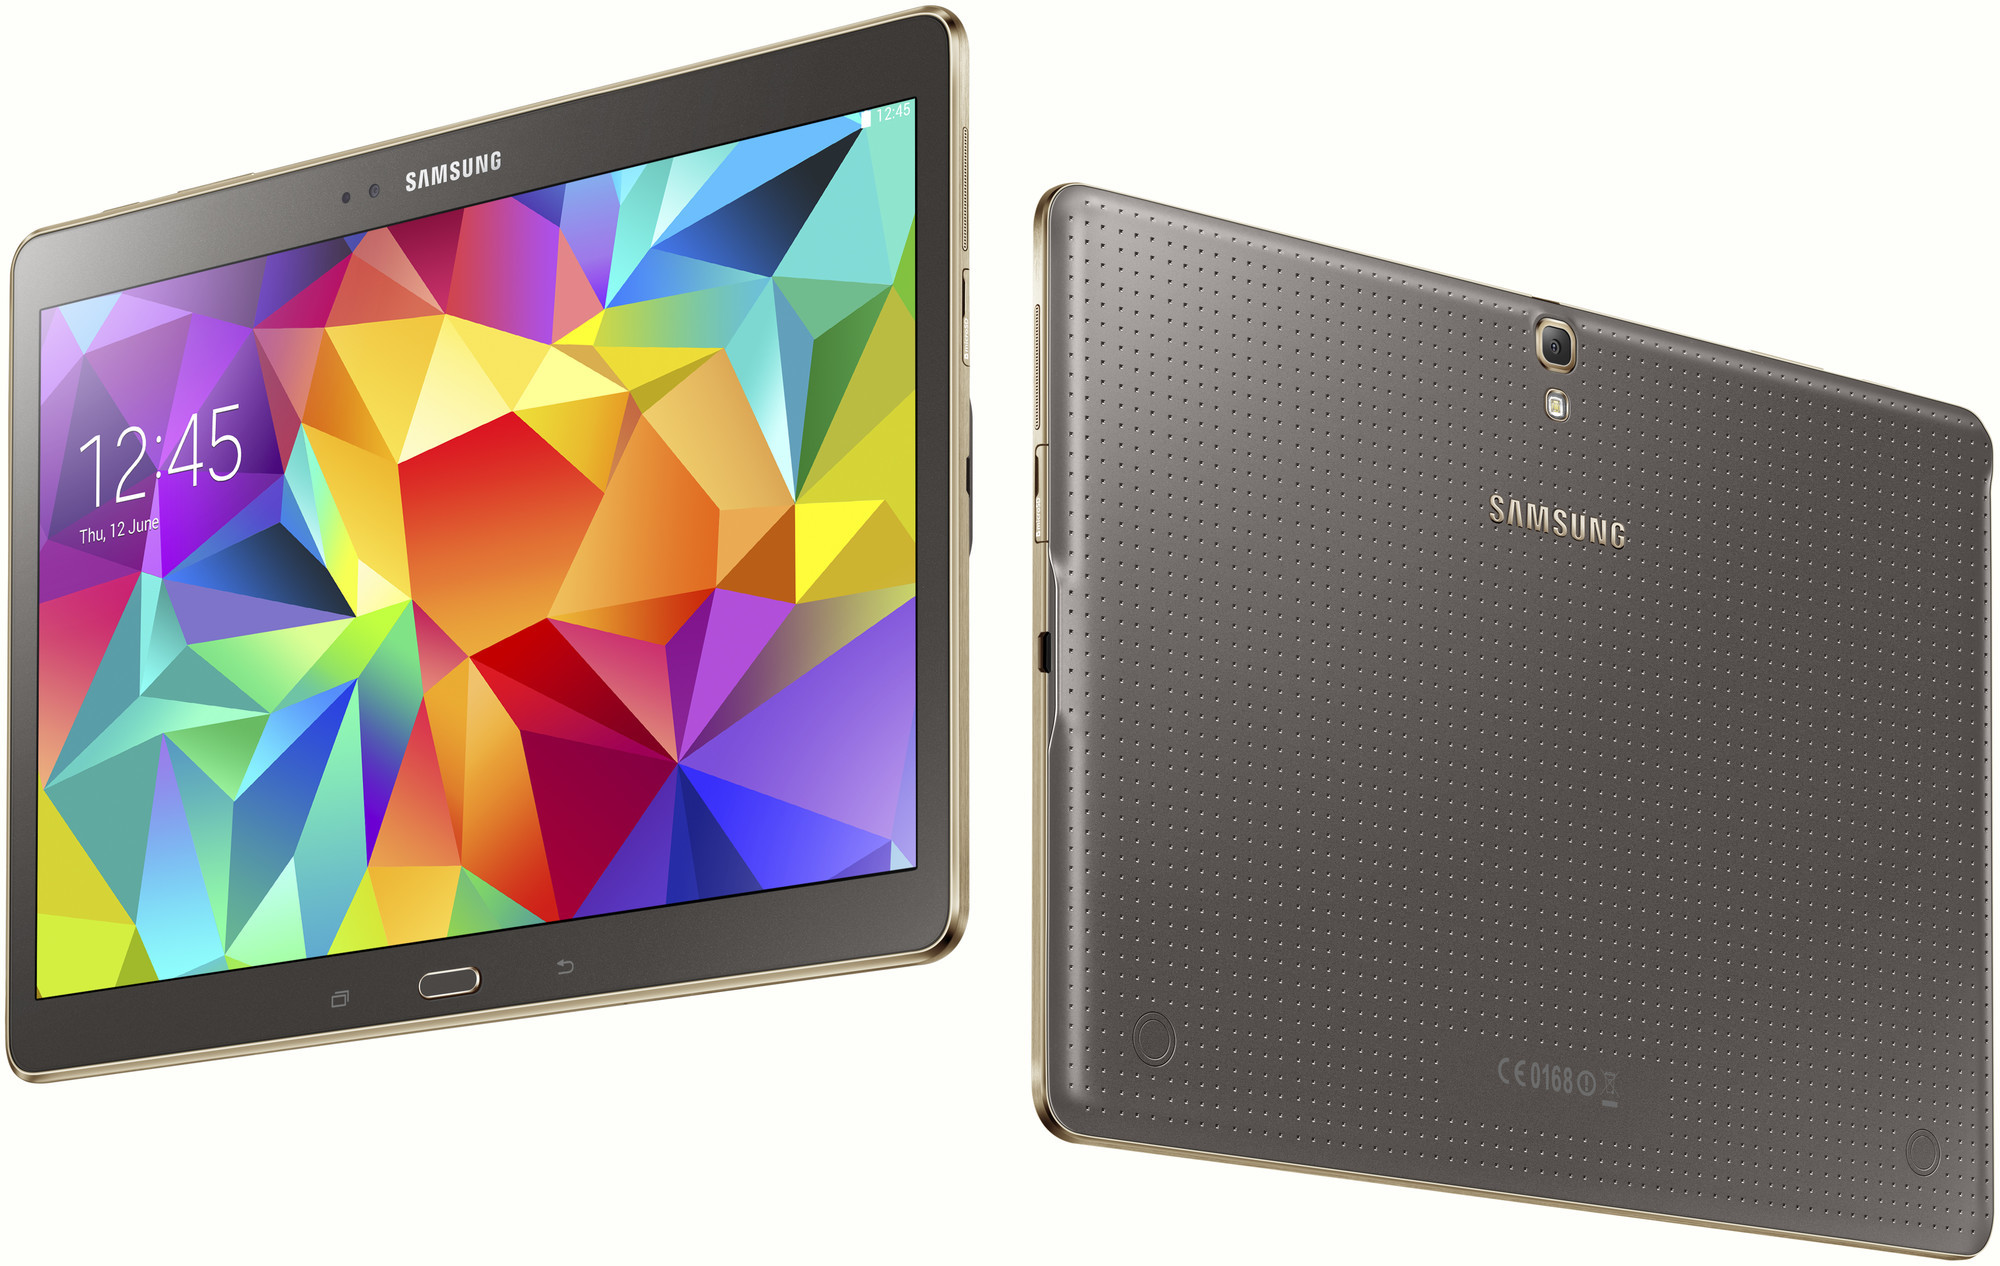 samsung galaxy tab s 10 5 sm t800 16gb specs and price. Black Bedroom Furniture Sets. Home Design Ideas